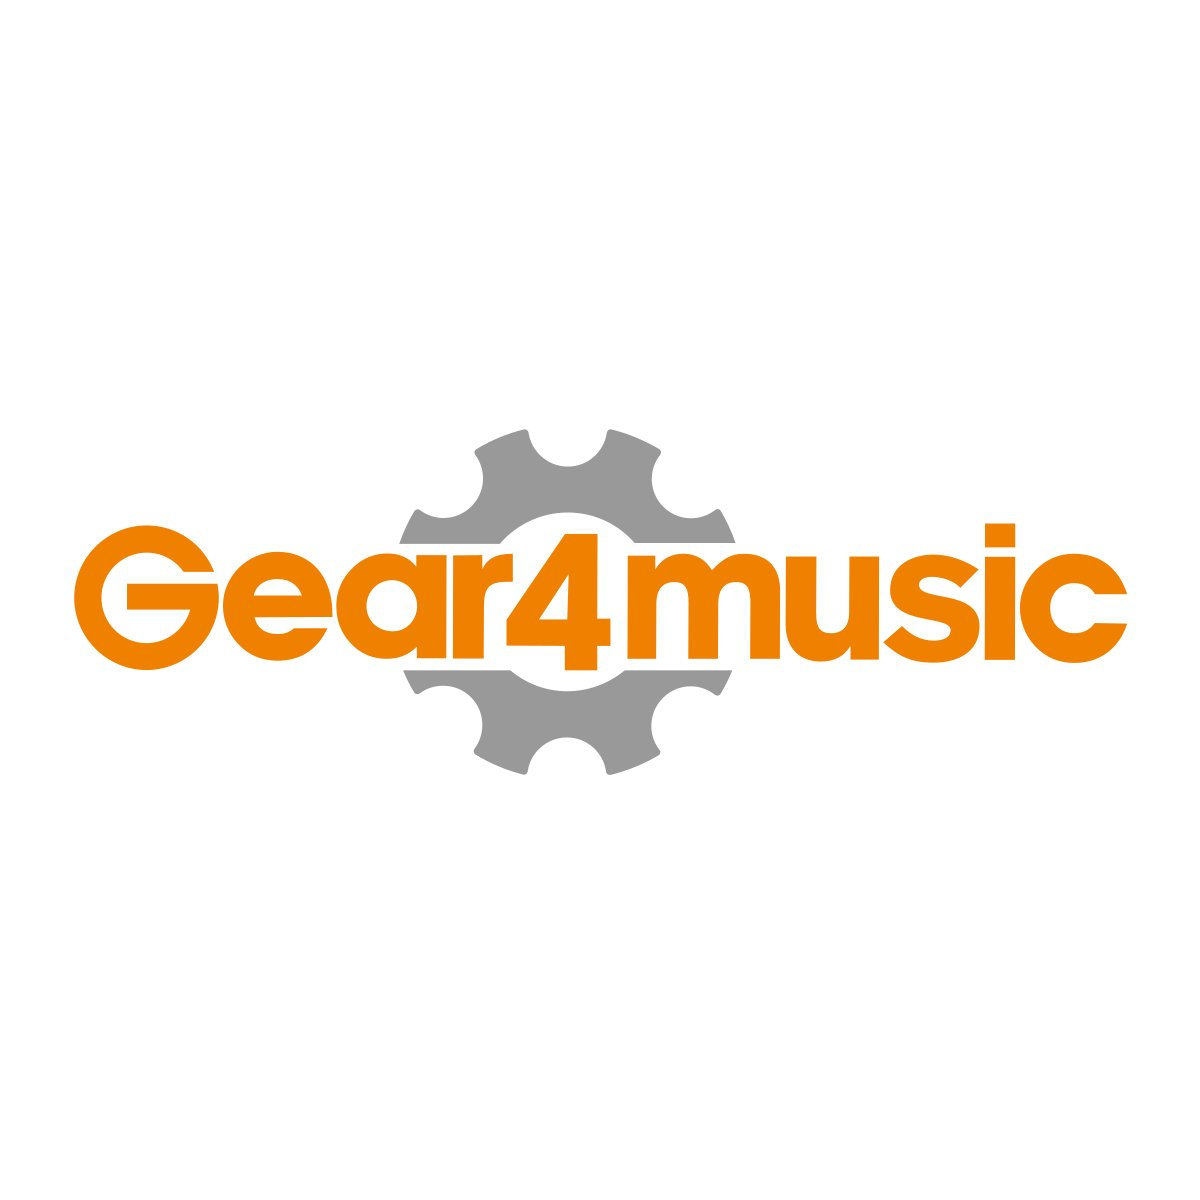 Ťažká činel Boom Stand by Gear4music